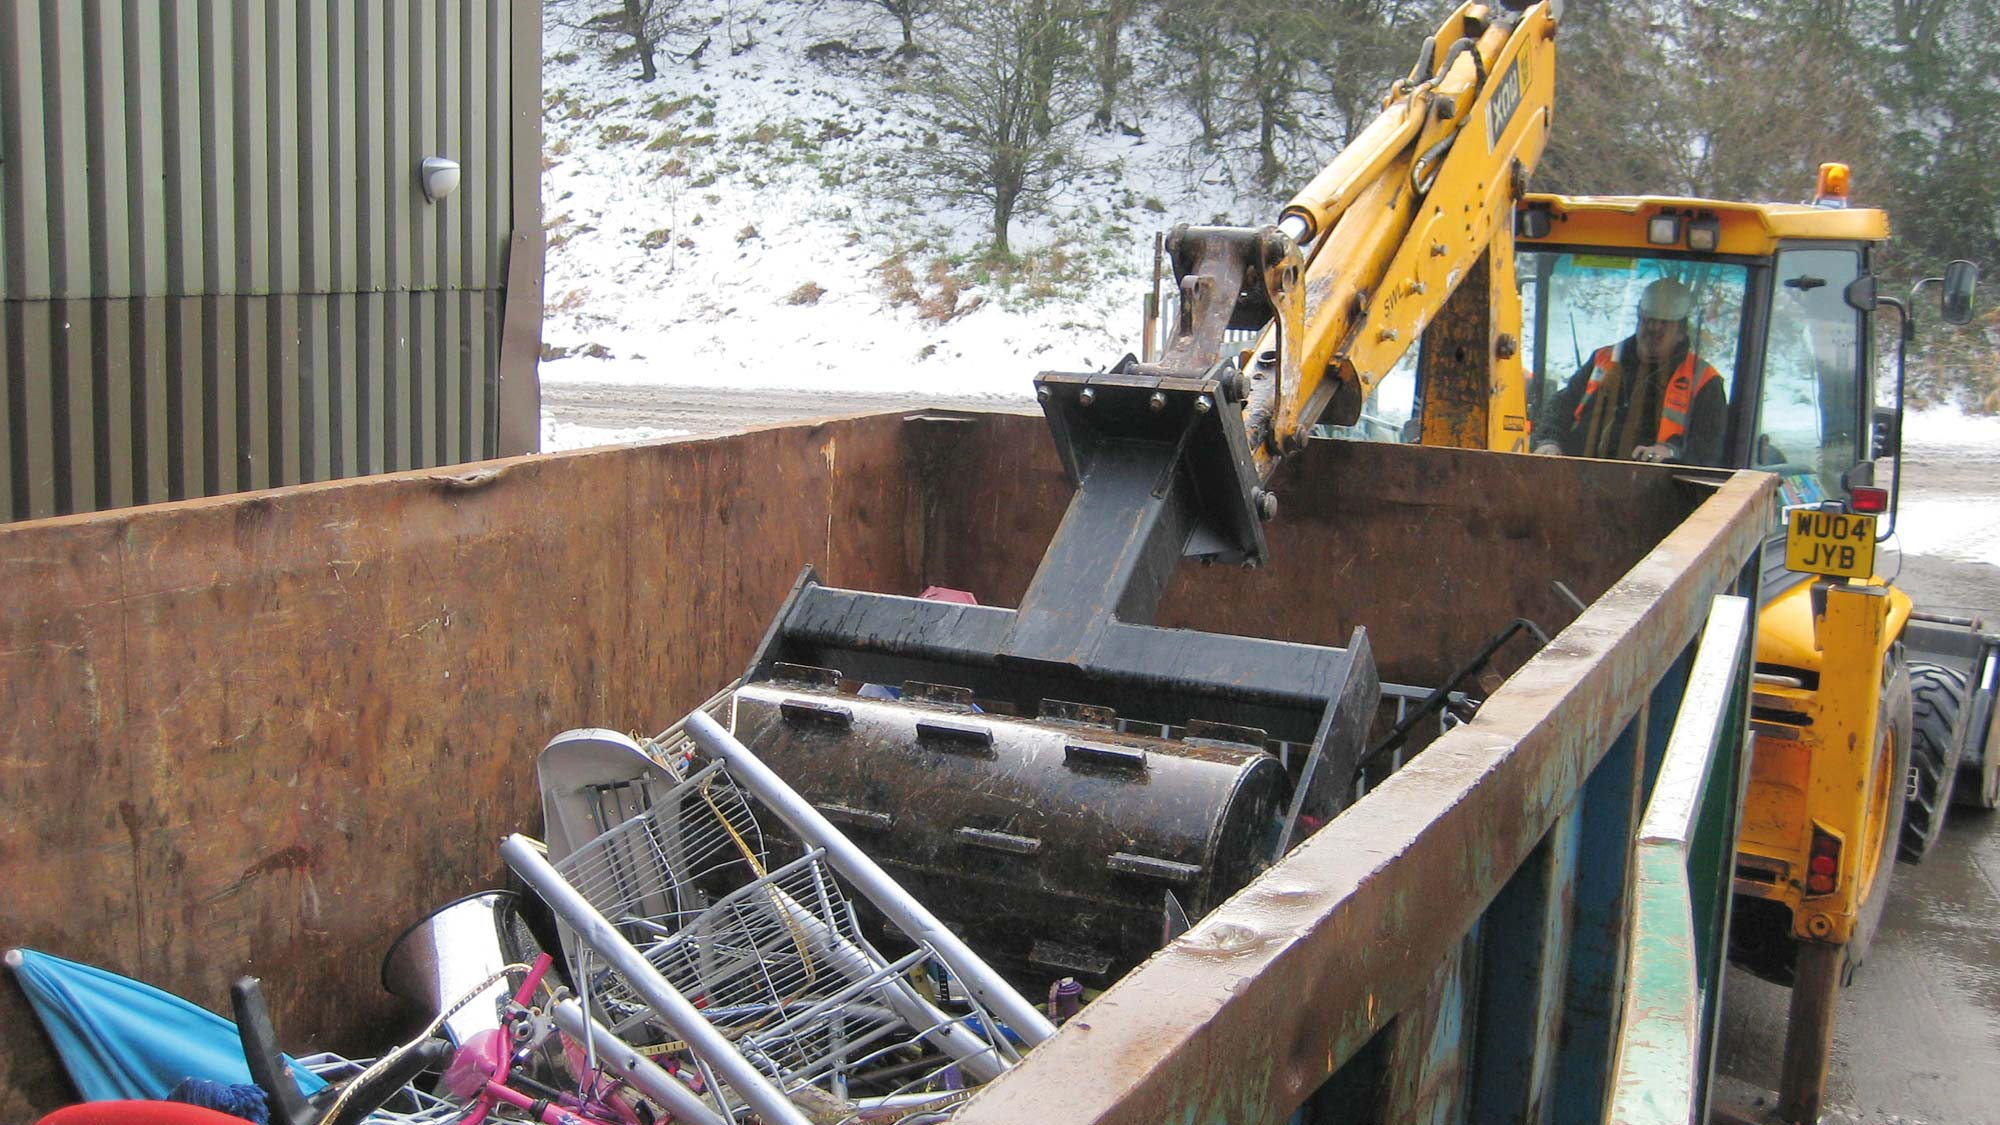 Eompax compacting waste